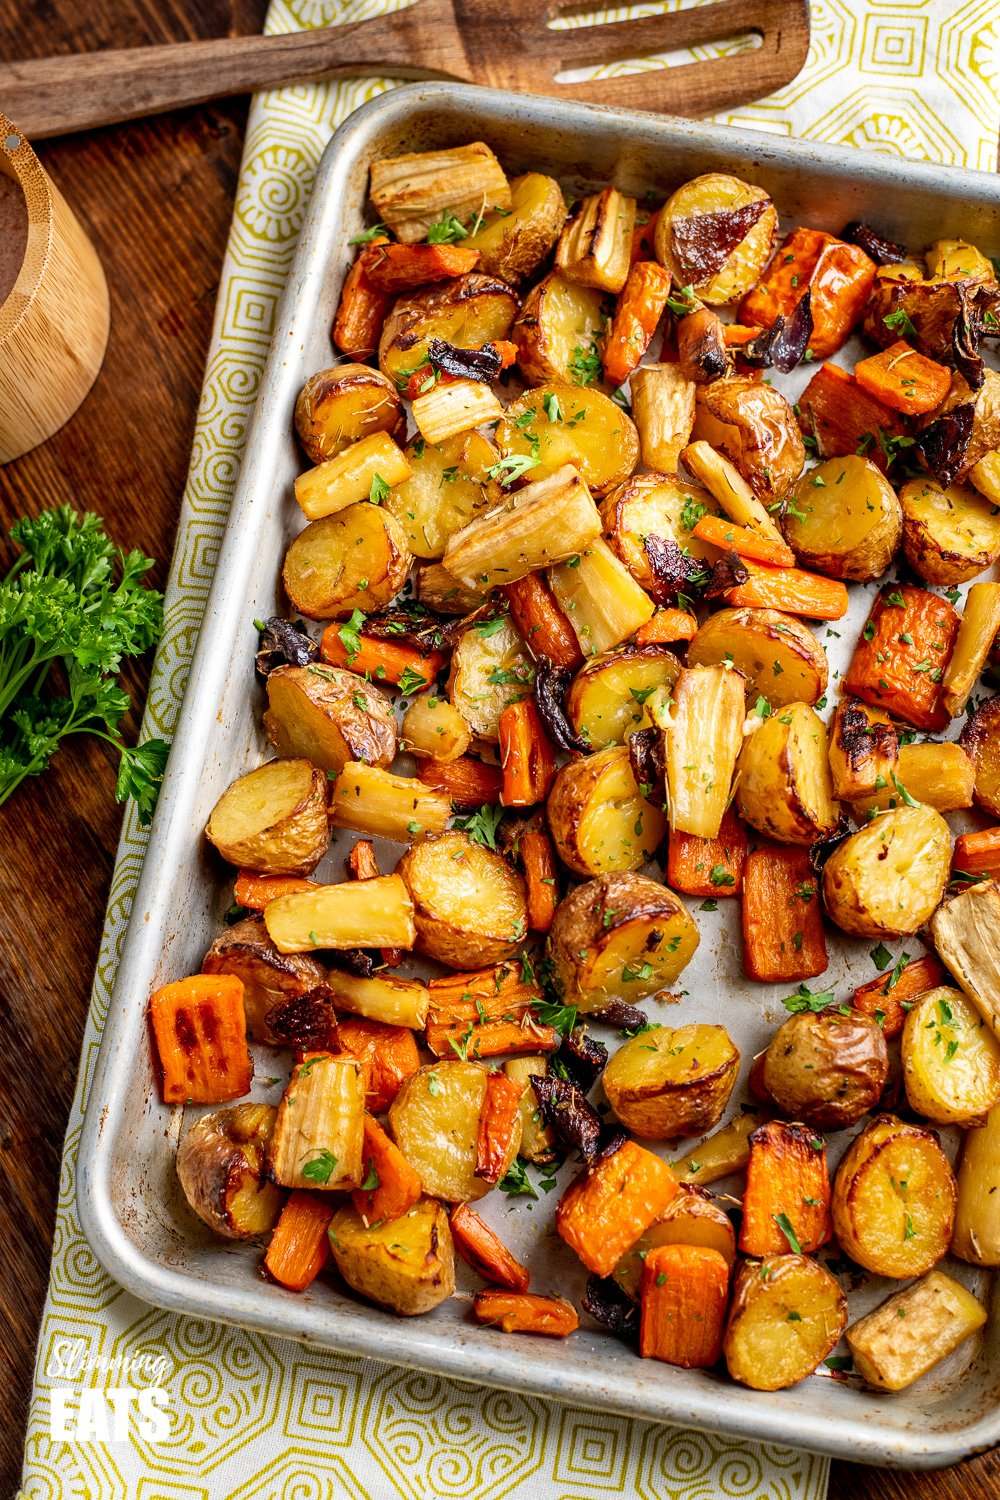 Rosemary Roasted Potatoes, Parsnips, Carrots and Onion on a baking tray